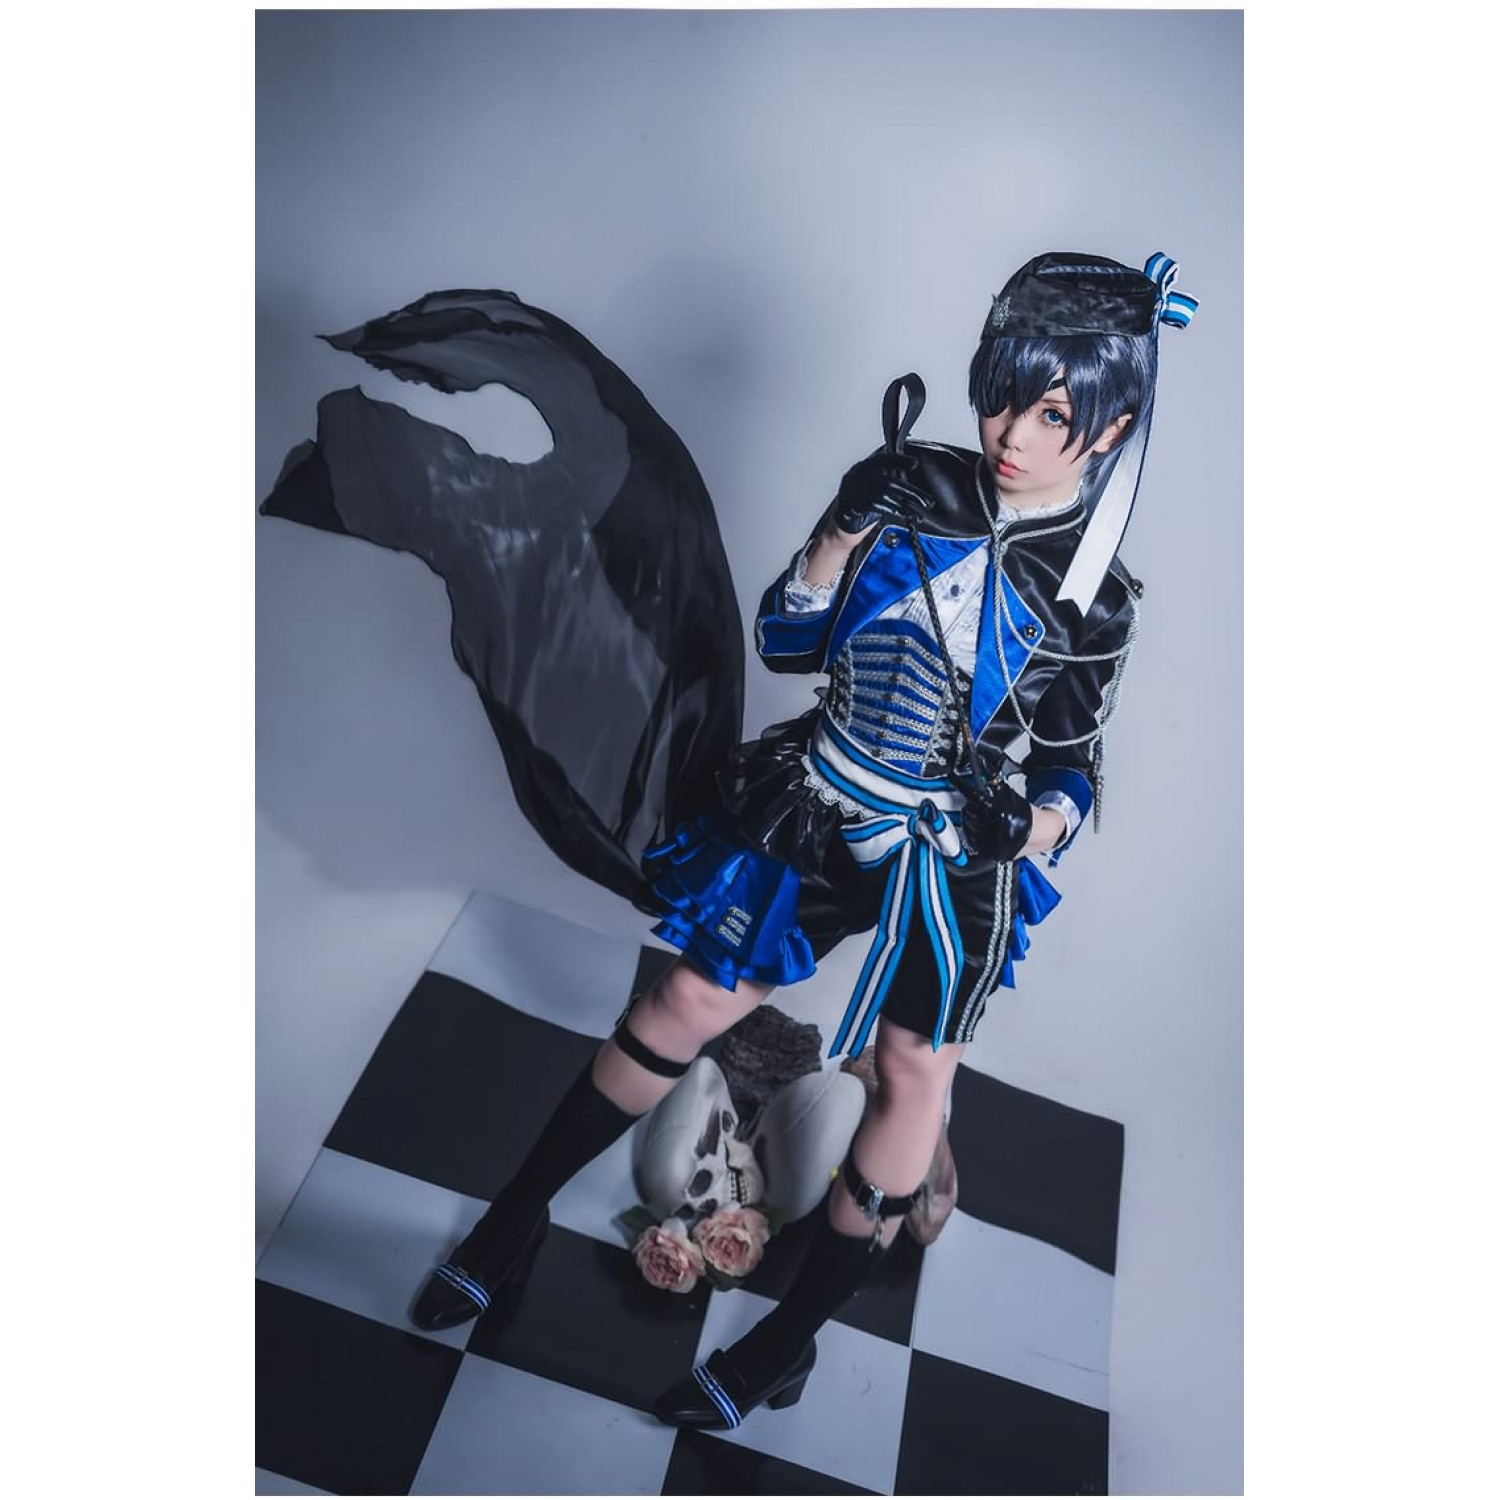 Black Butler Ciel Phantomhive Aniplex Japan Anime Cosplay Costume